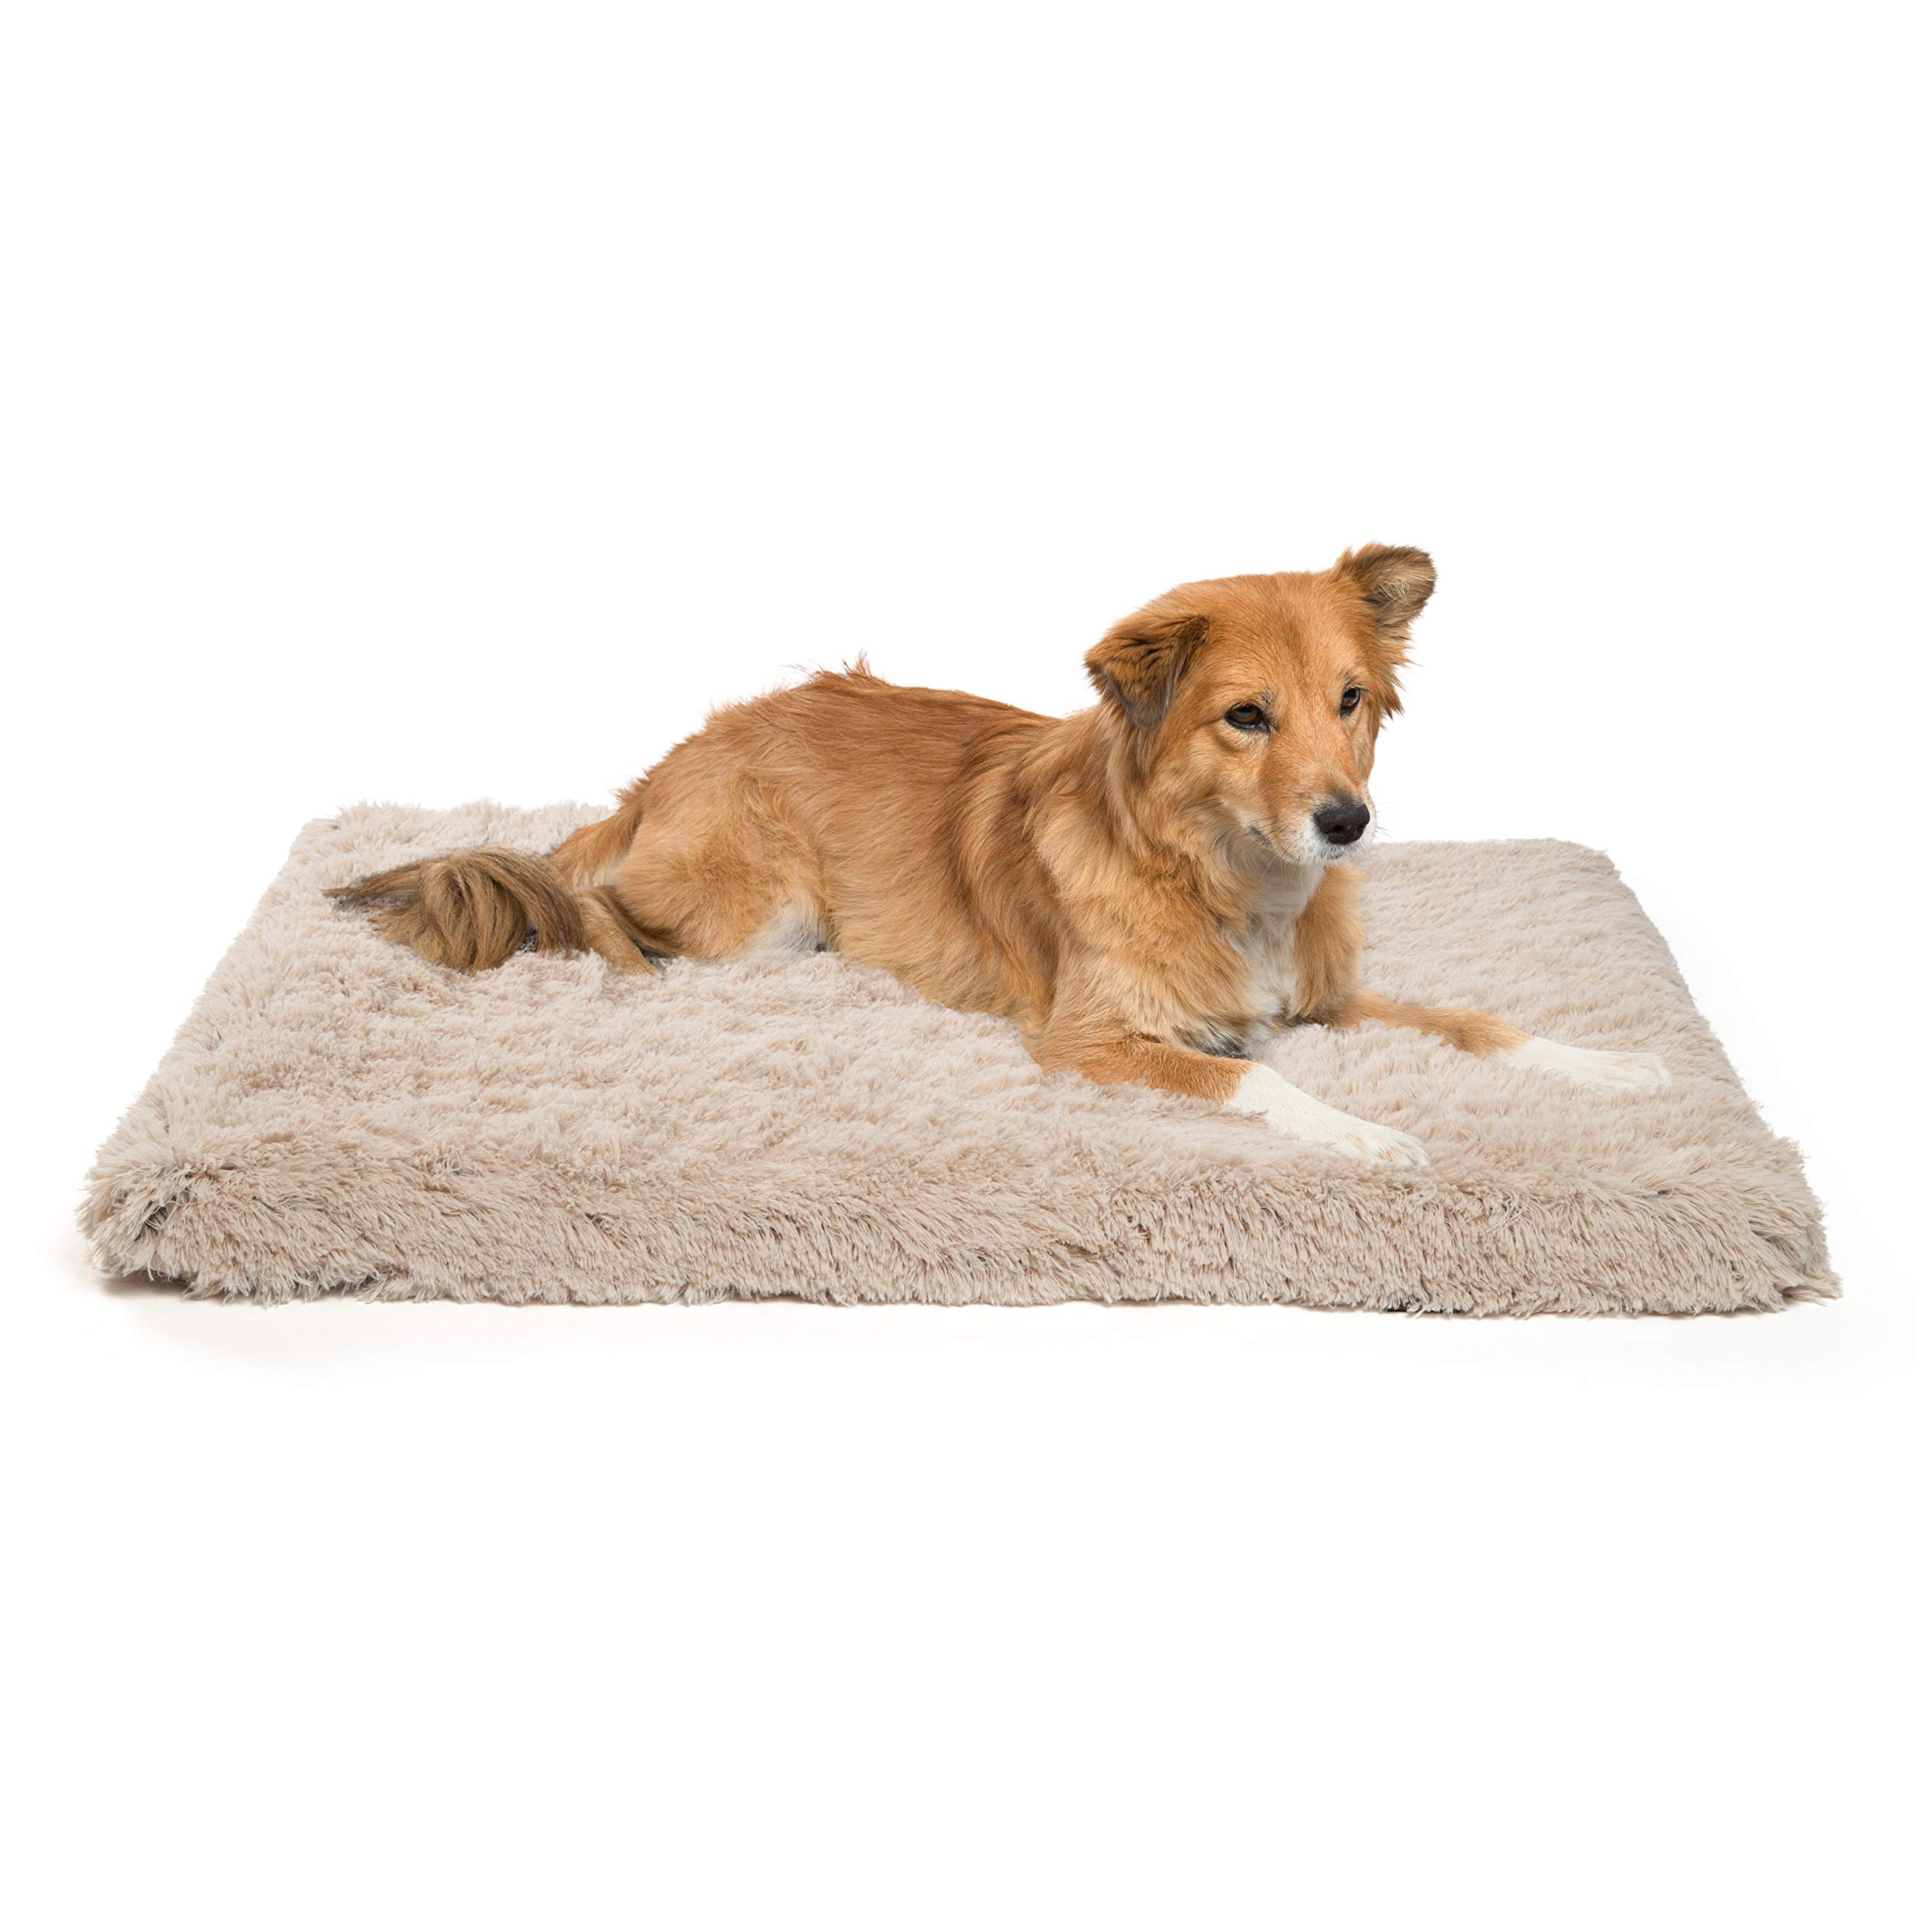 Best Friends by Sheri Orthopedic Dog Bed - Vegan Faux Fur Cushion Supports Joints, Soothes Your Pet, Improves Sleep - Self-Warming w/Zippered Cover, Machine Washable - 27x36 in Taupe